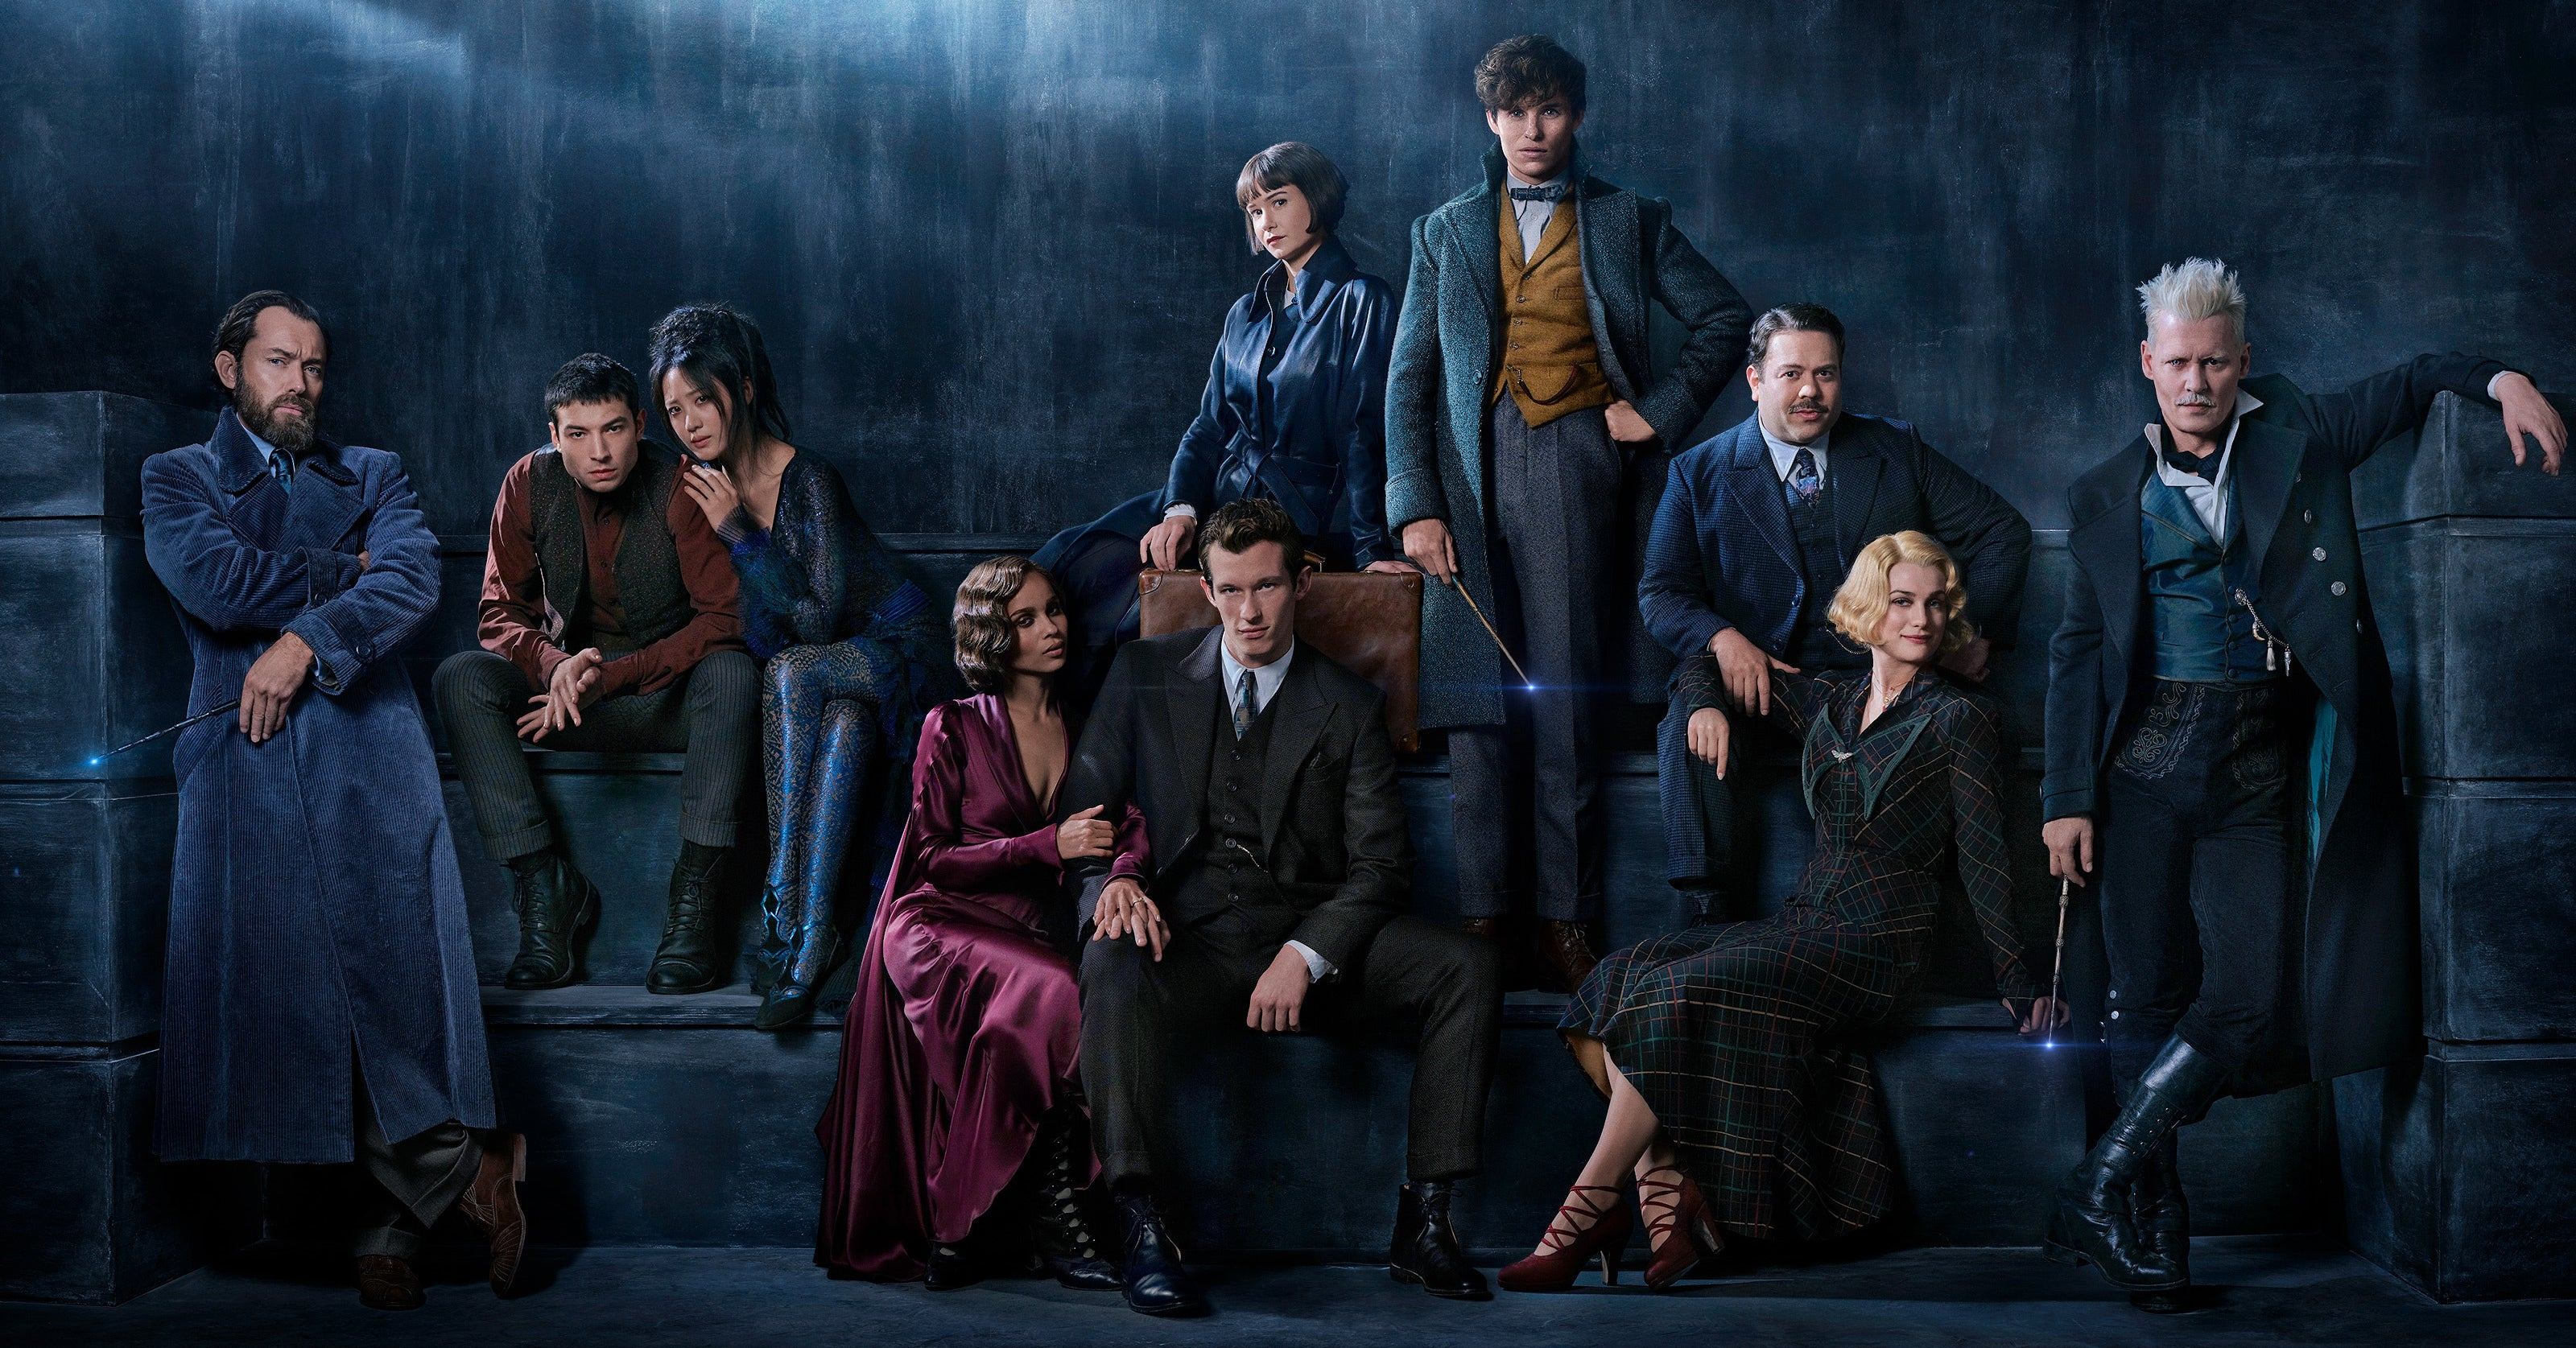 Image result for fantastic beasts the crimes of grindelwald cast